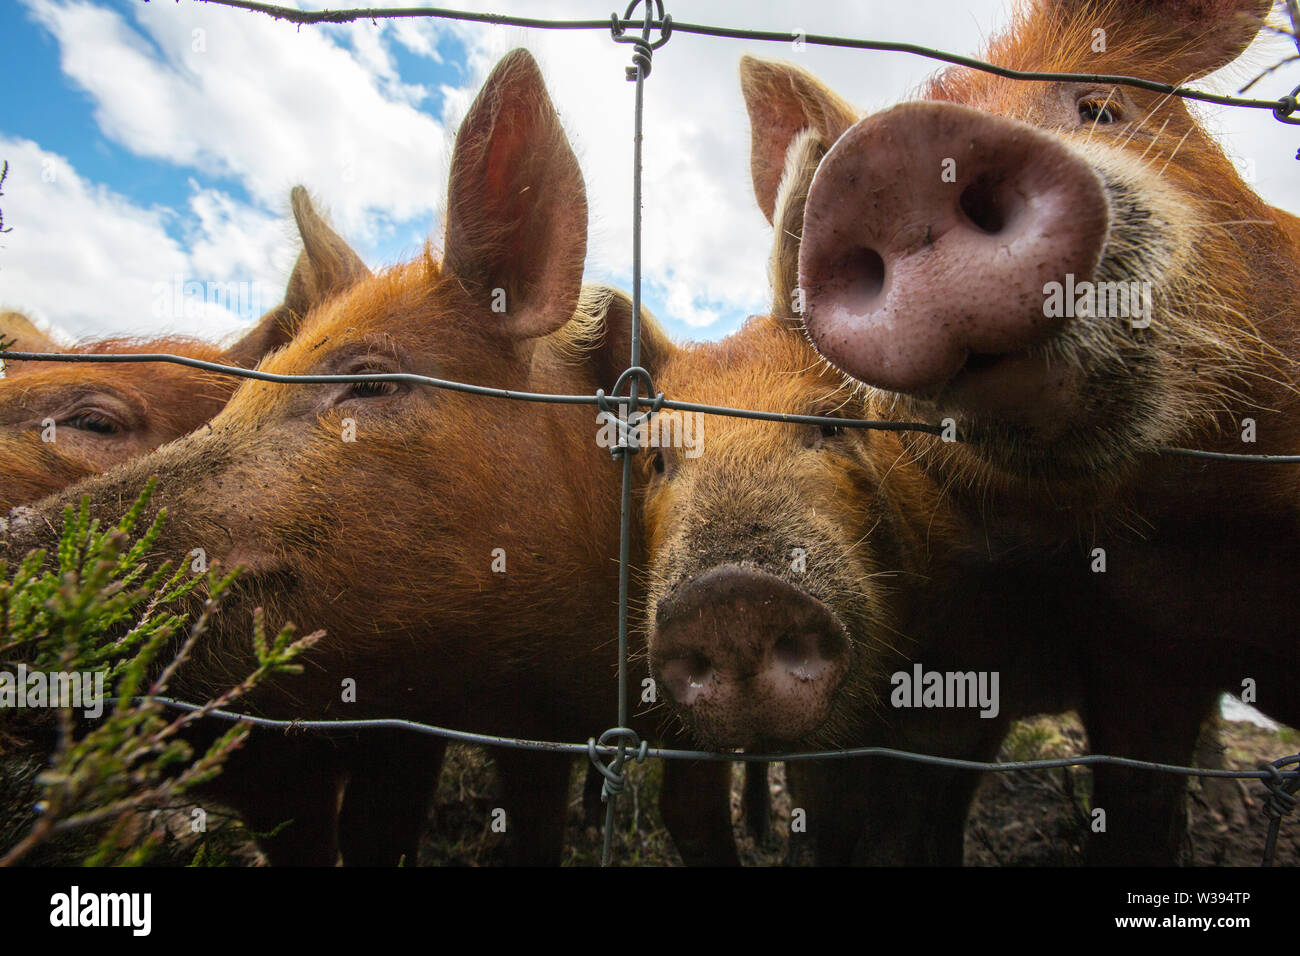 Free range Tamworth Pigs in Glen Affric by Affric Lodge, Highlands, Scotland, UK. - Stock Image